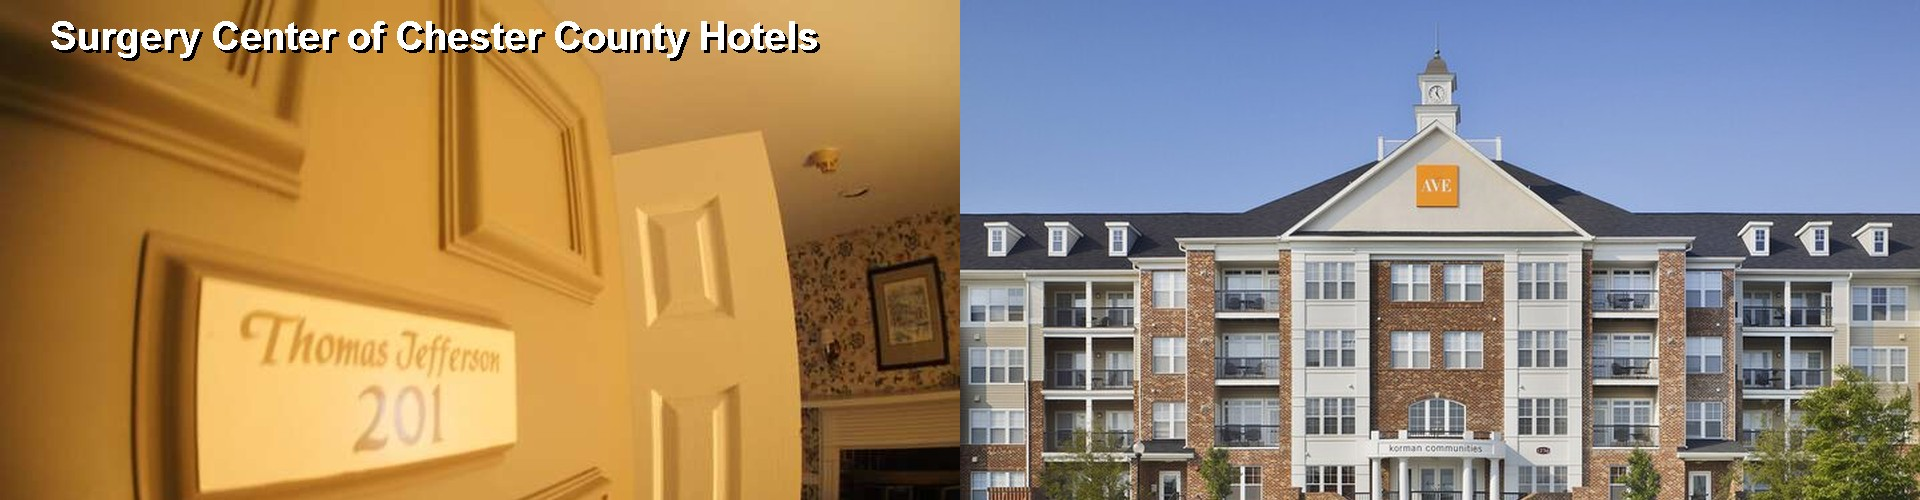 5 Best Hotels near Surgery Center of Chester County